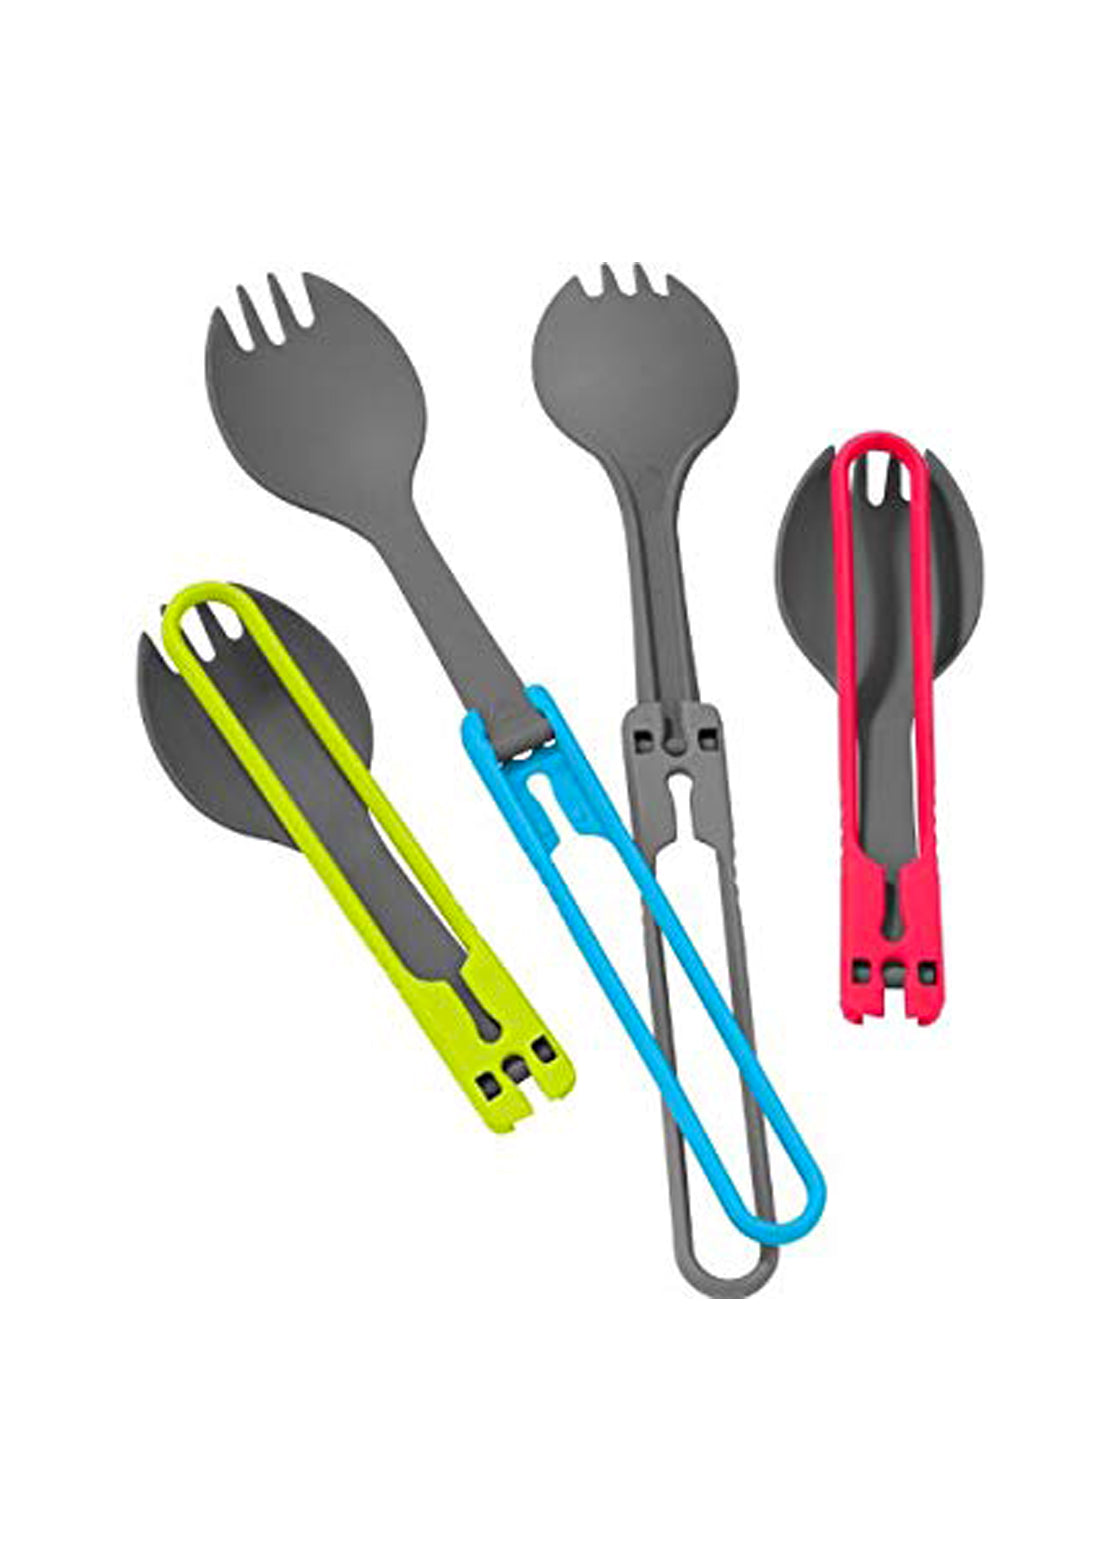 MSR Folding Sporks 4 Pieces Ustensils Kit